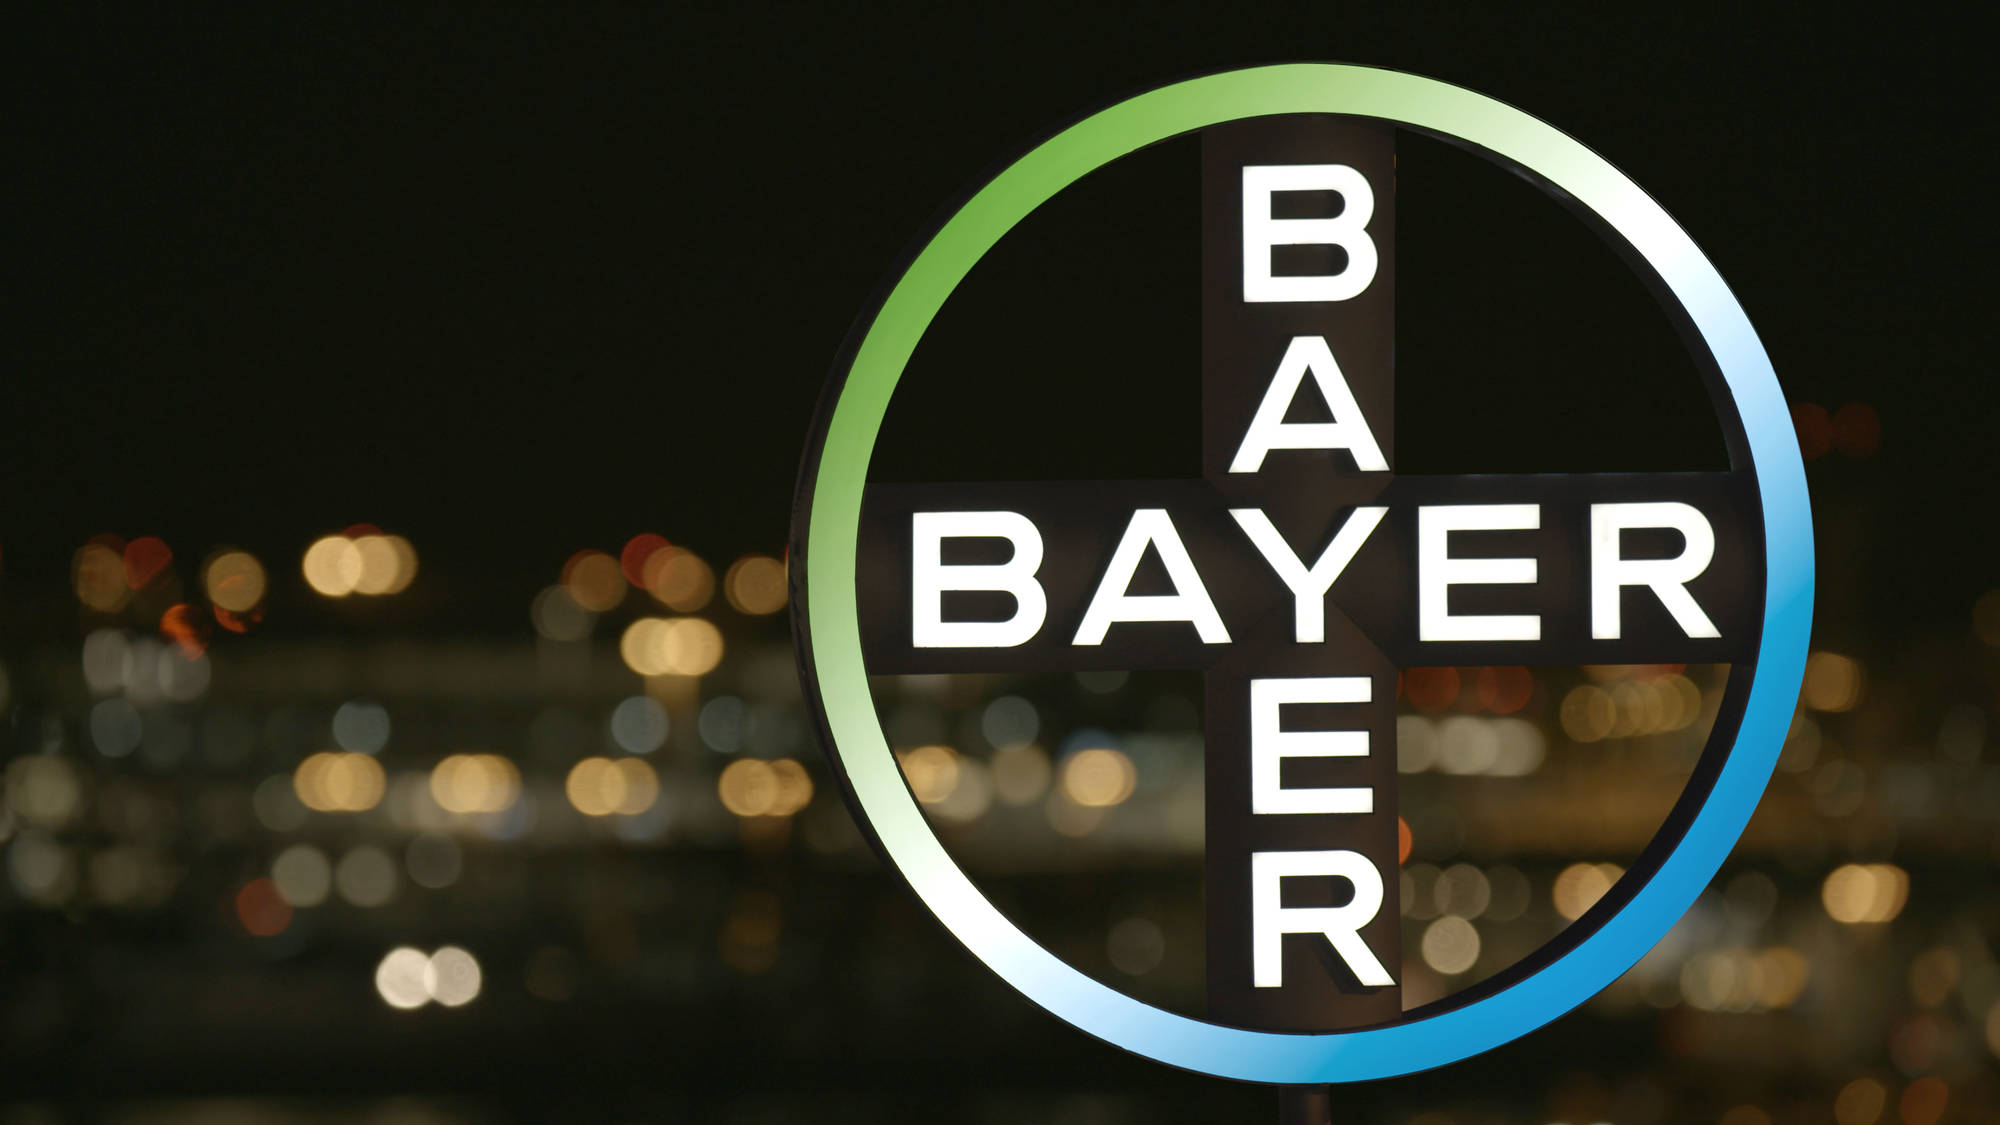 Bayer Celebrates 60 Years of Progress in Empowering Women